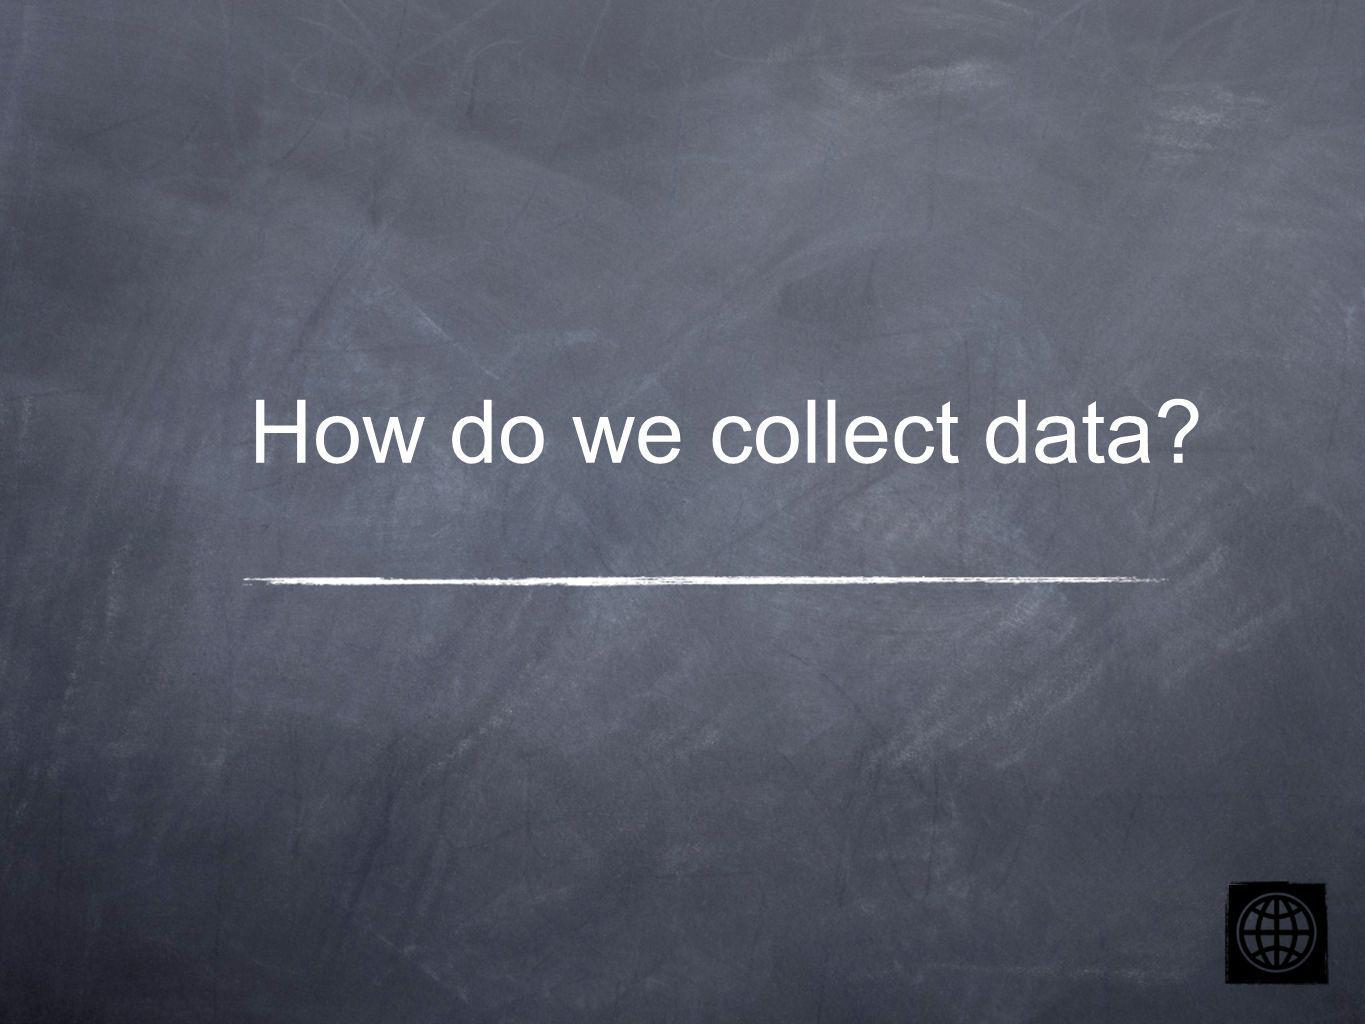 How do we collect data